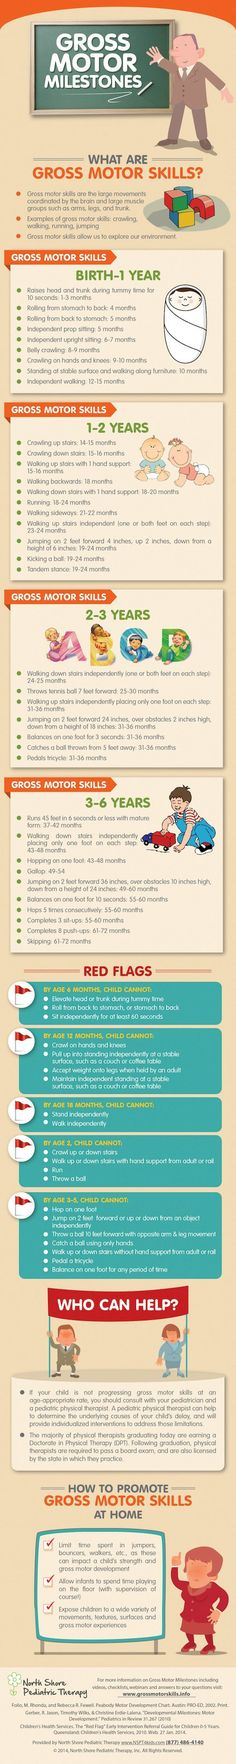 Gross Motor Milestones from North Shore Pediatrics - great tips for new parents